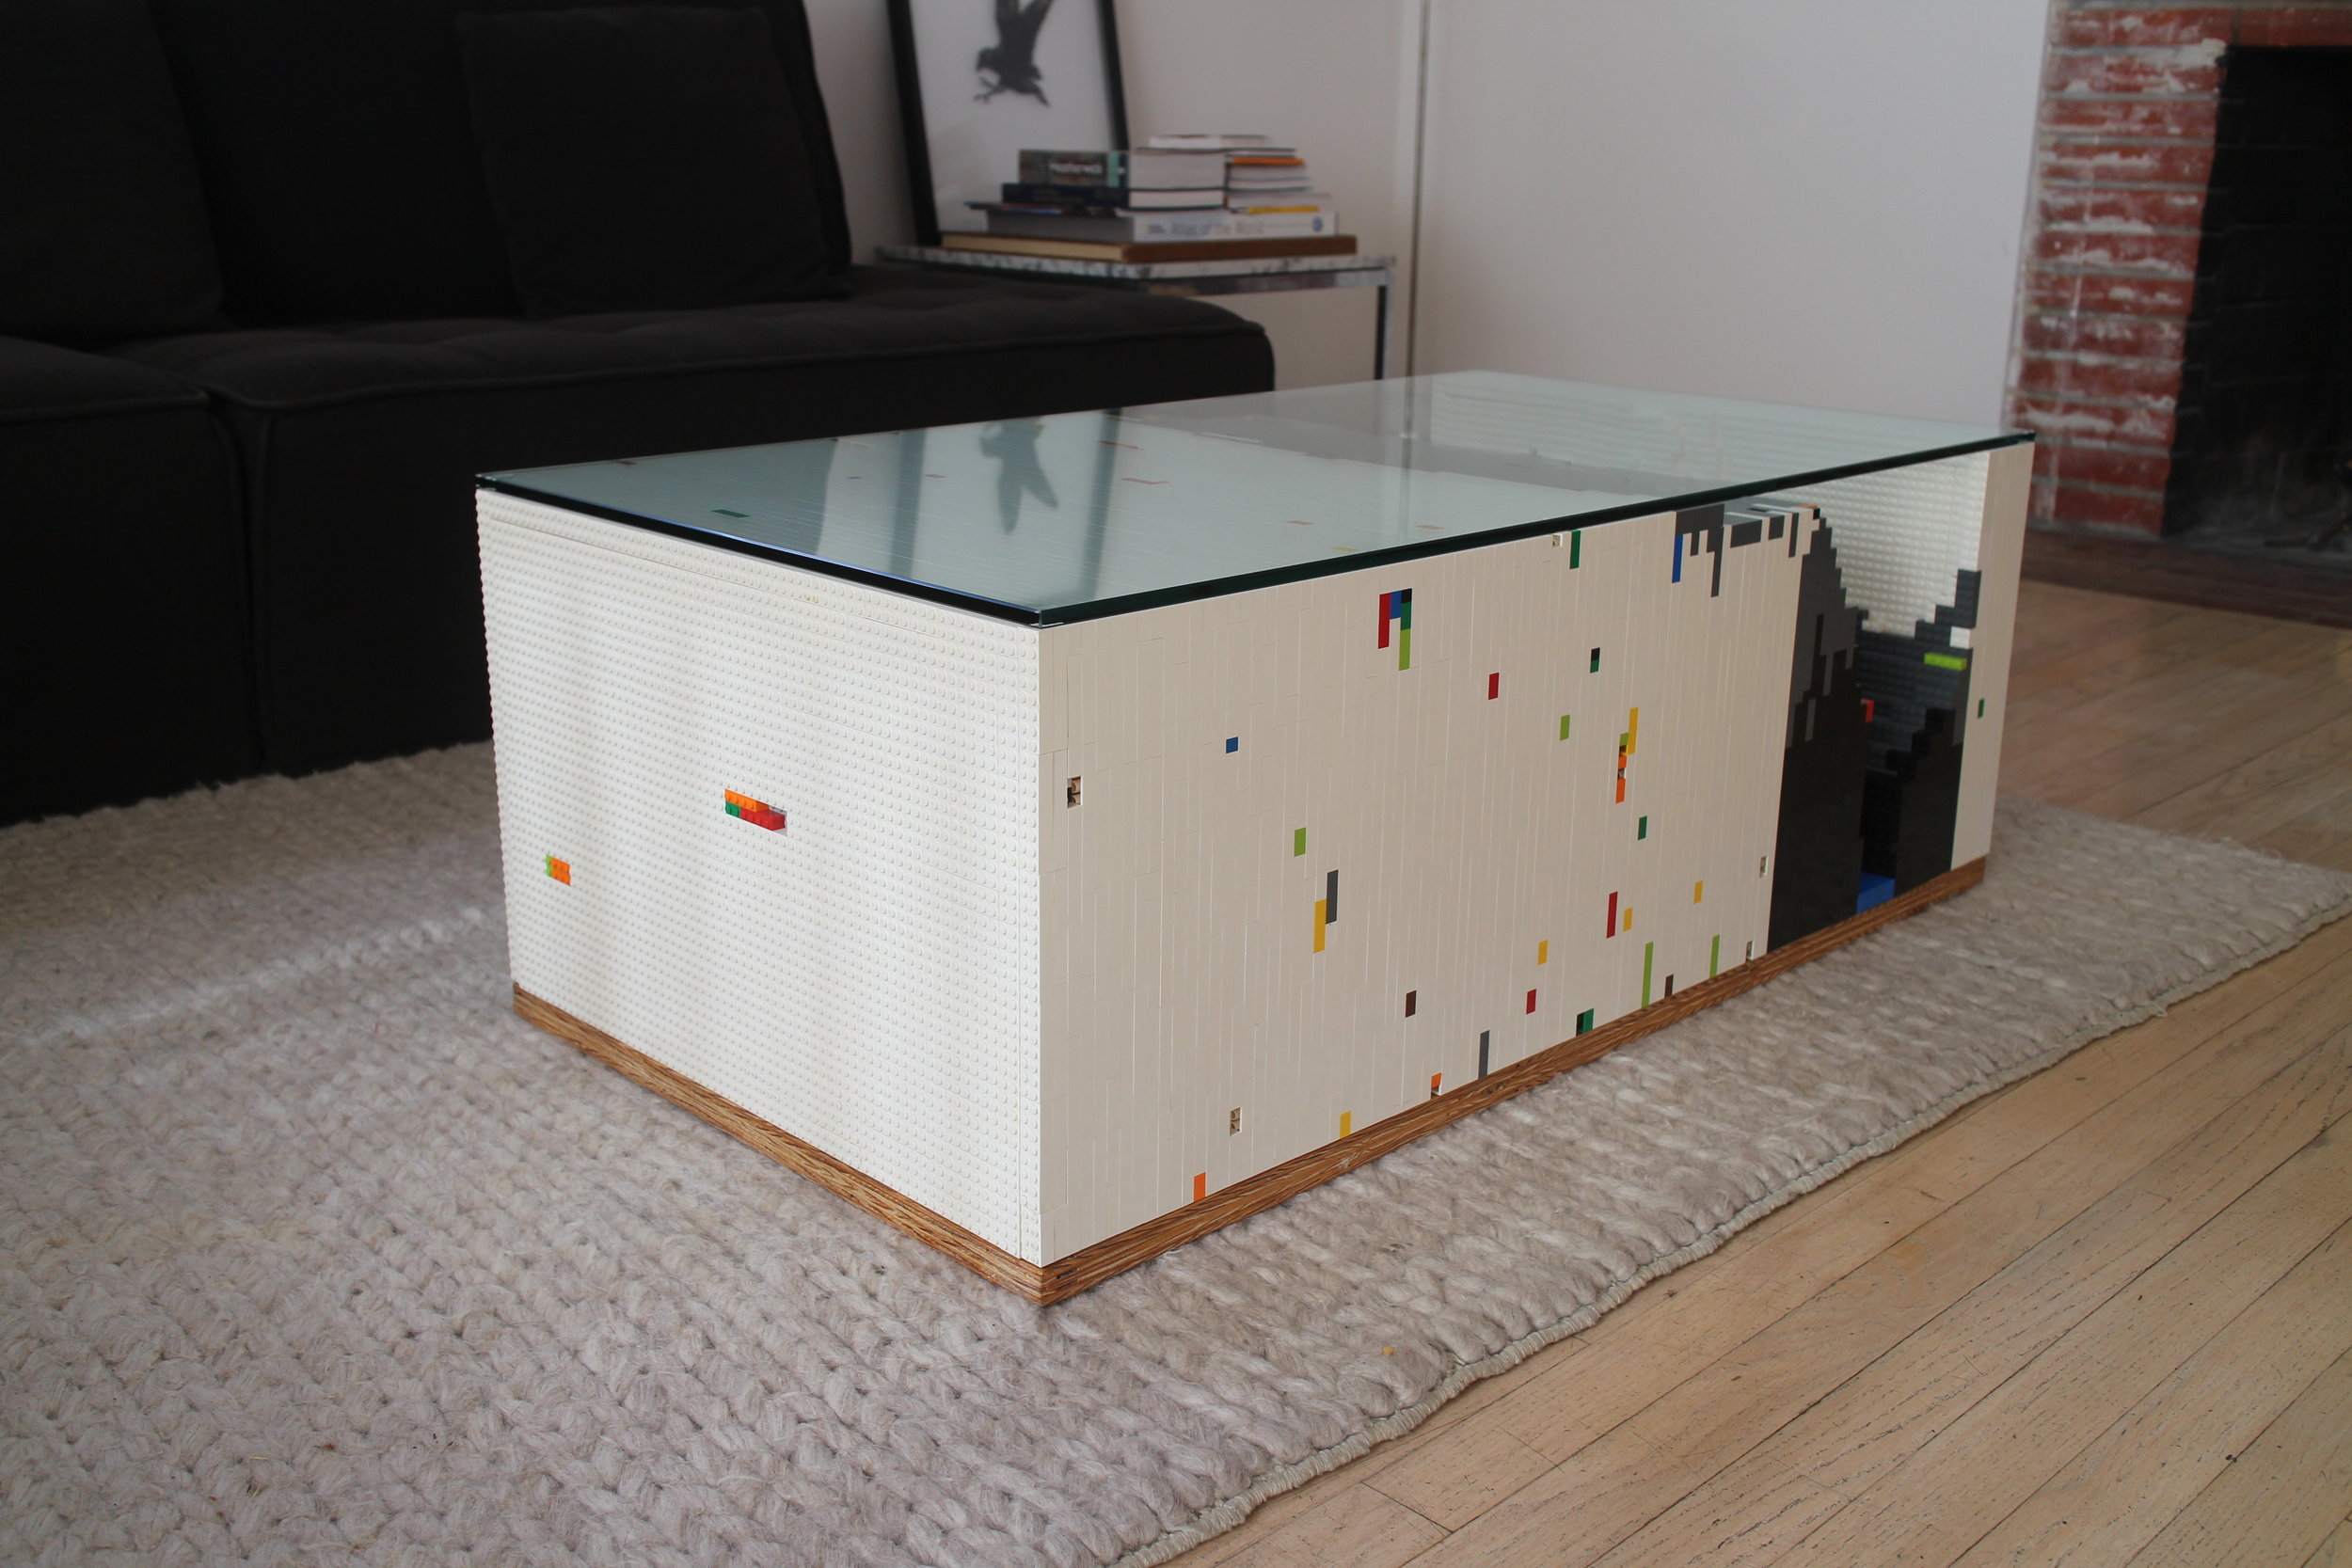 Lego Fjord Table